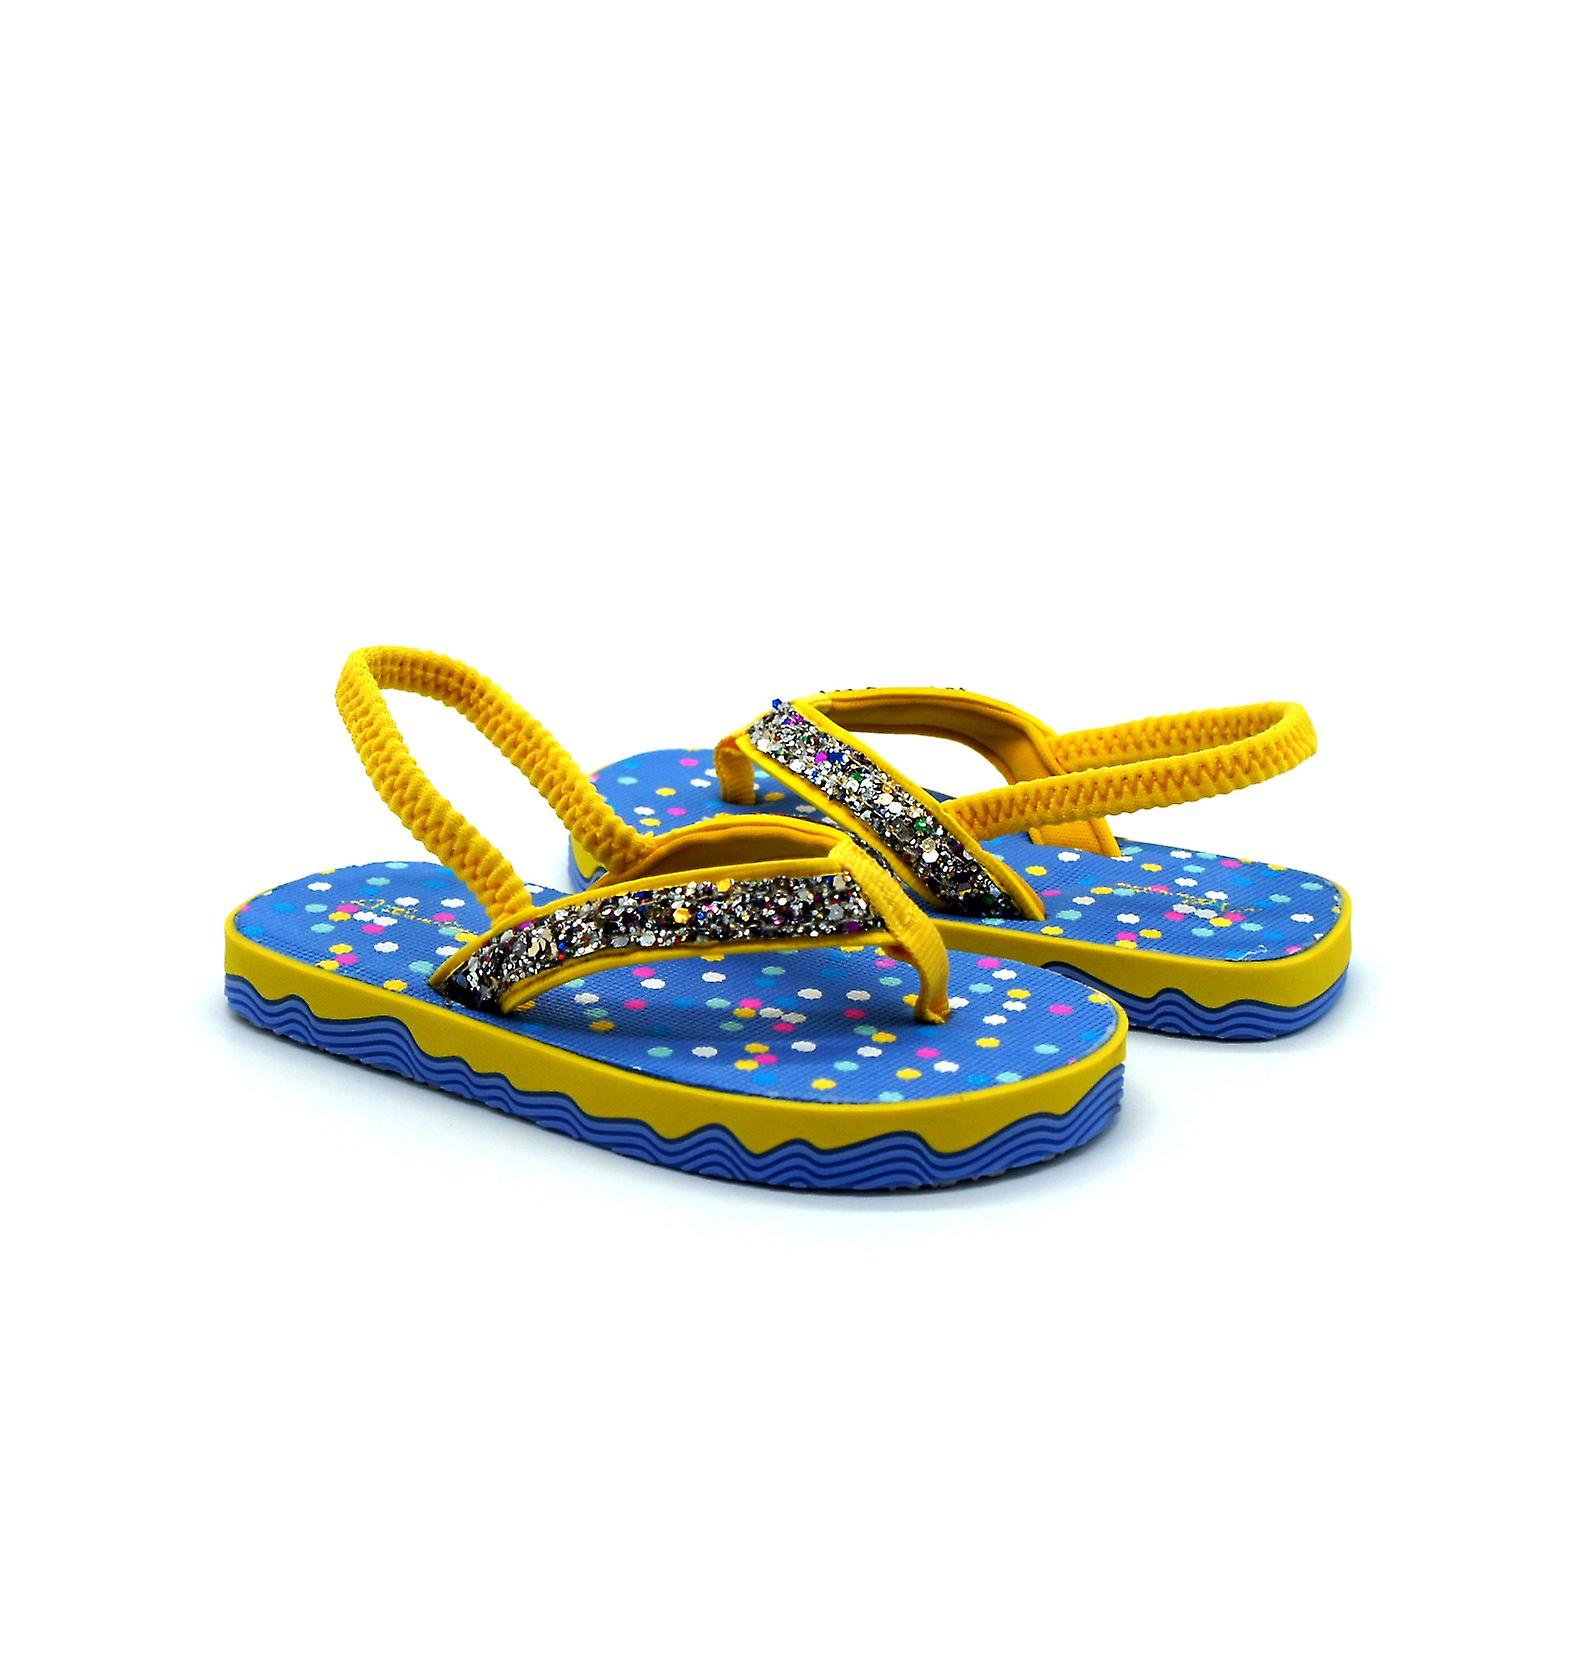 Atlantis Shoes Kids Girls Supportive Cushioned Comfortable Sandals Flip Flops Twinkle Yellow